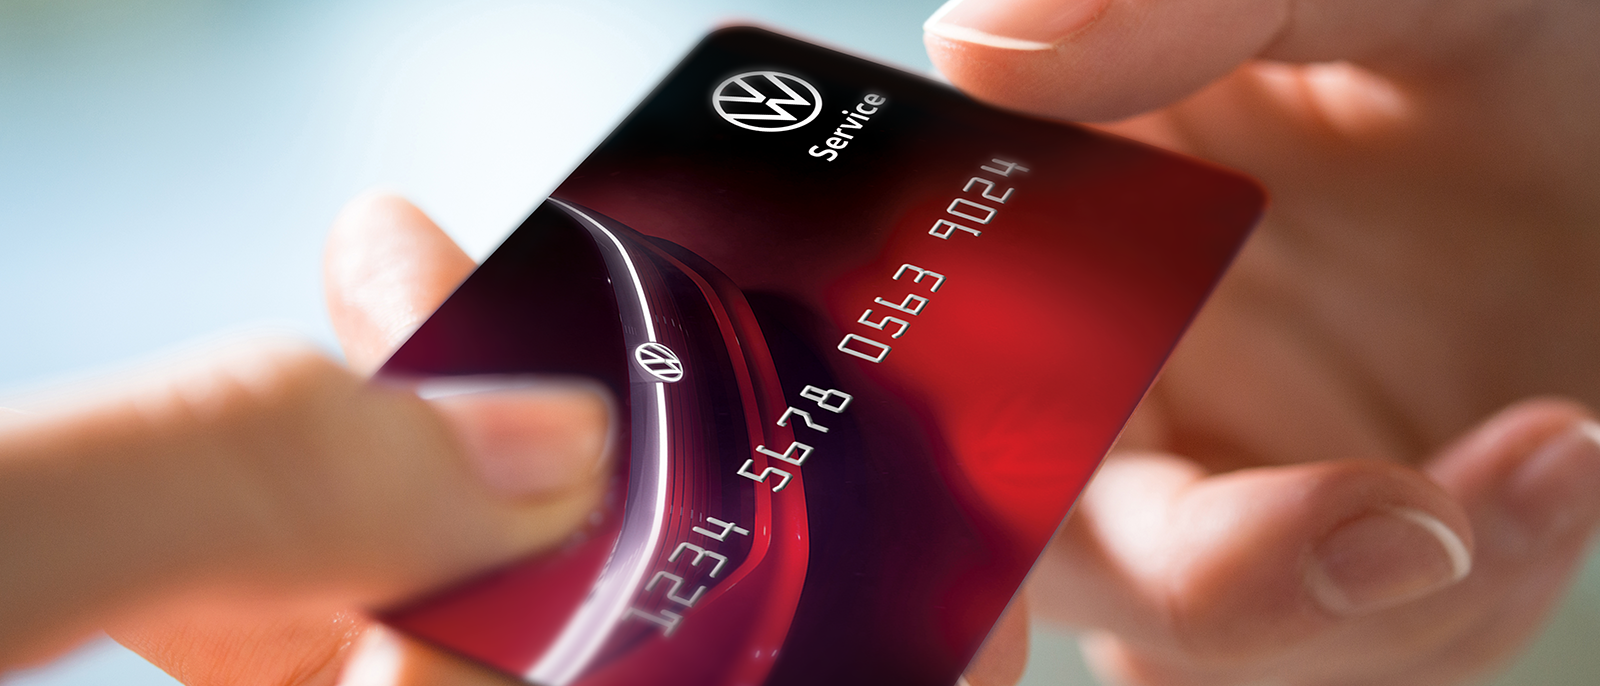 A person handing a Volkswagen service credit card